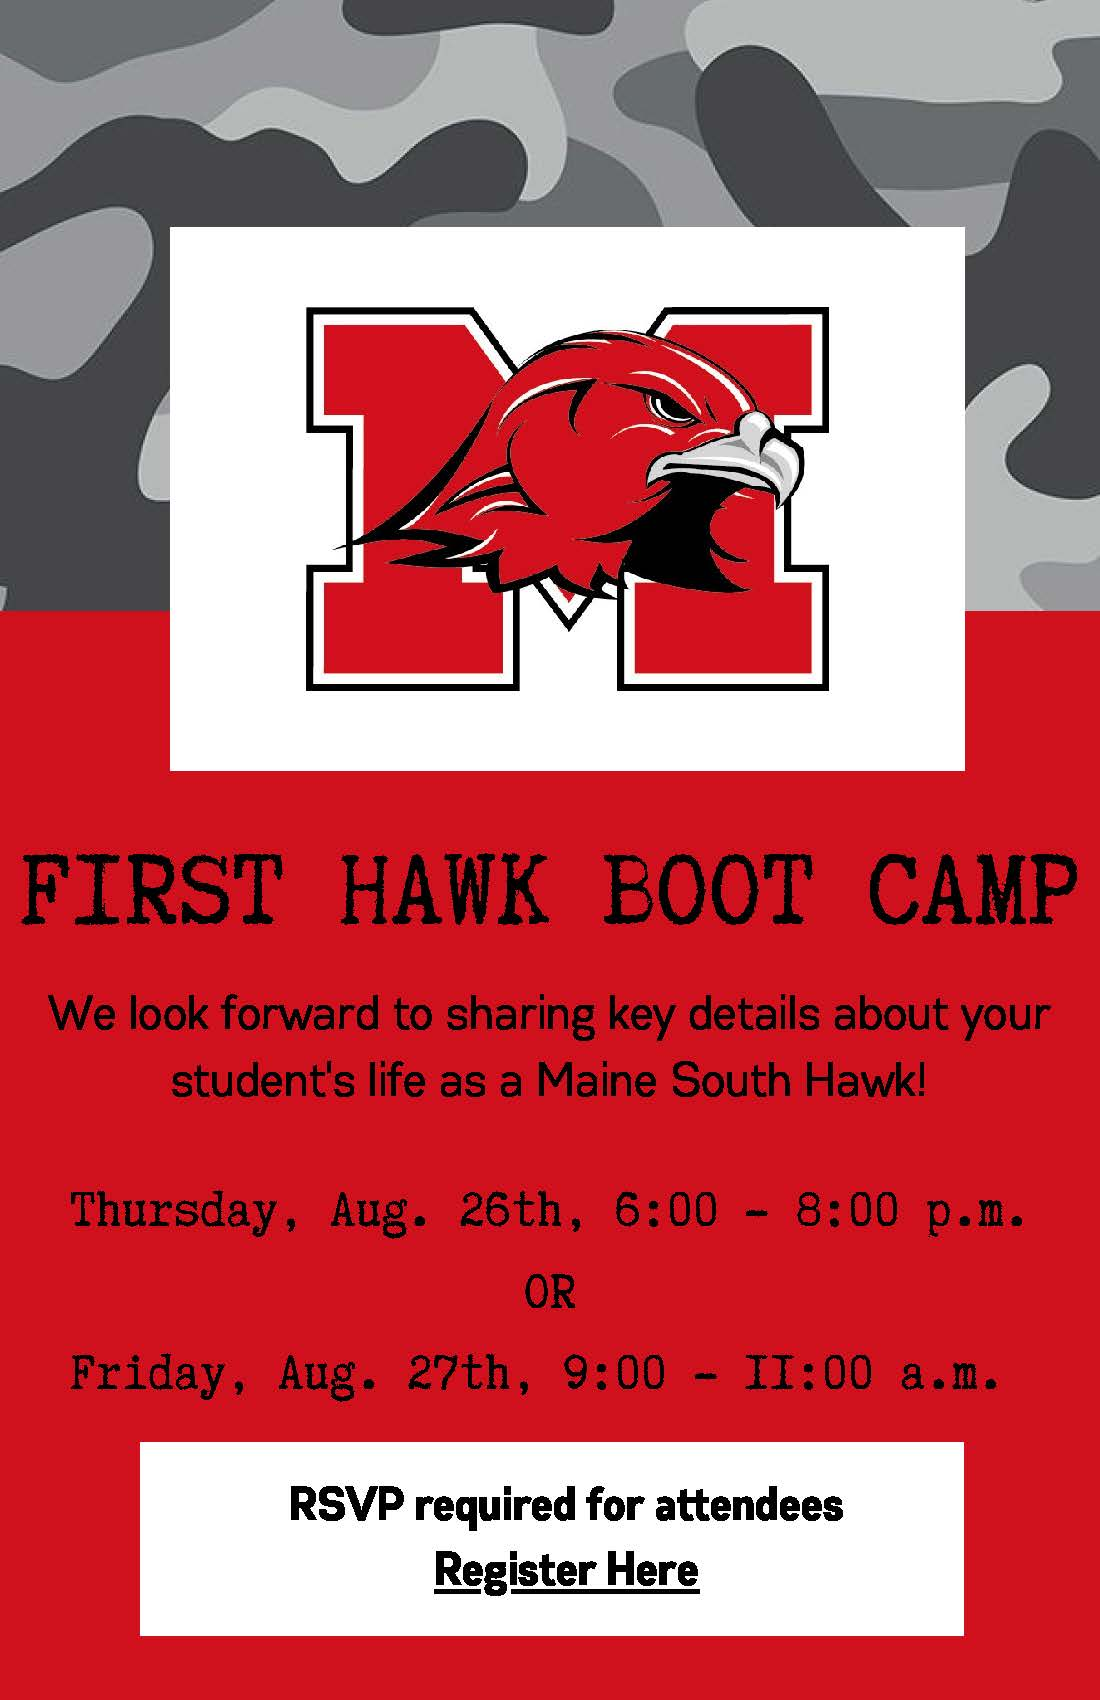 FIRST HAWK BOOT CAMP ad for August 2021